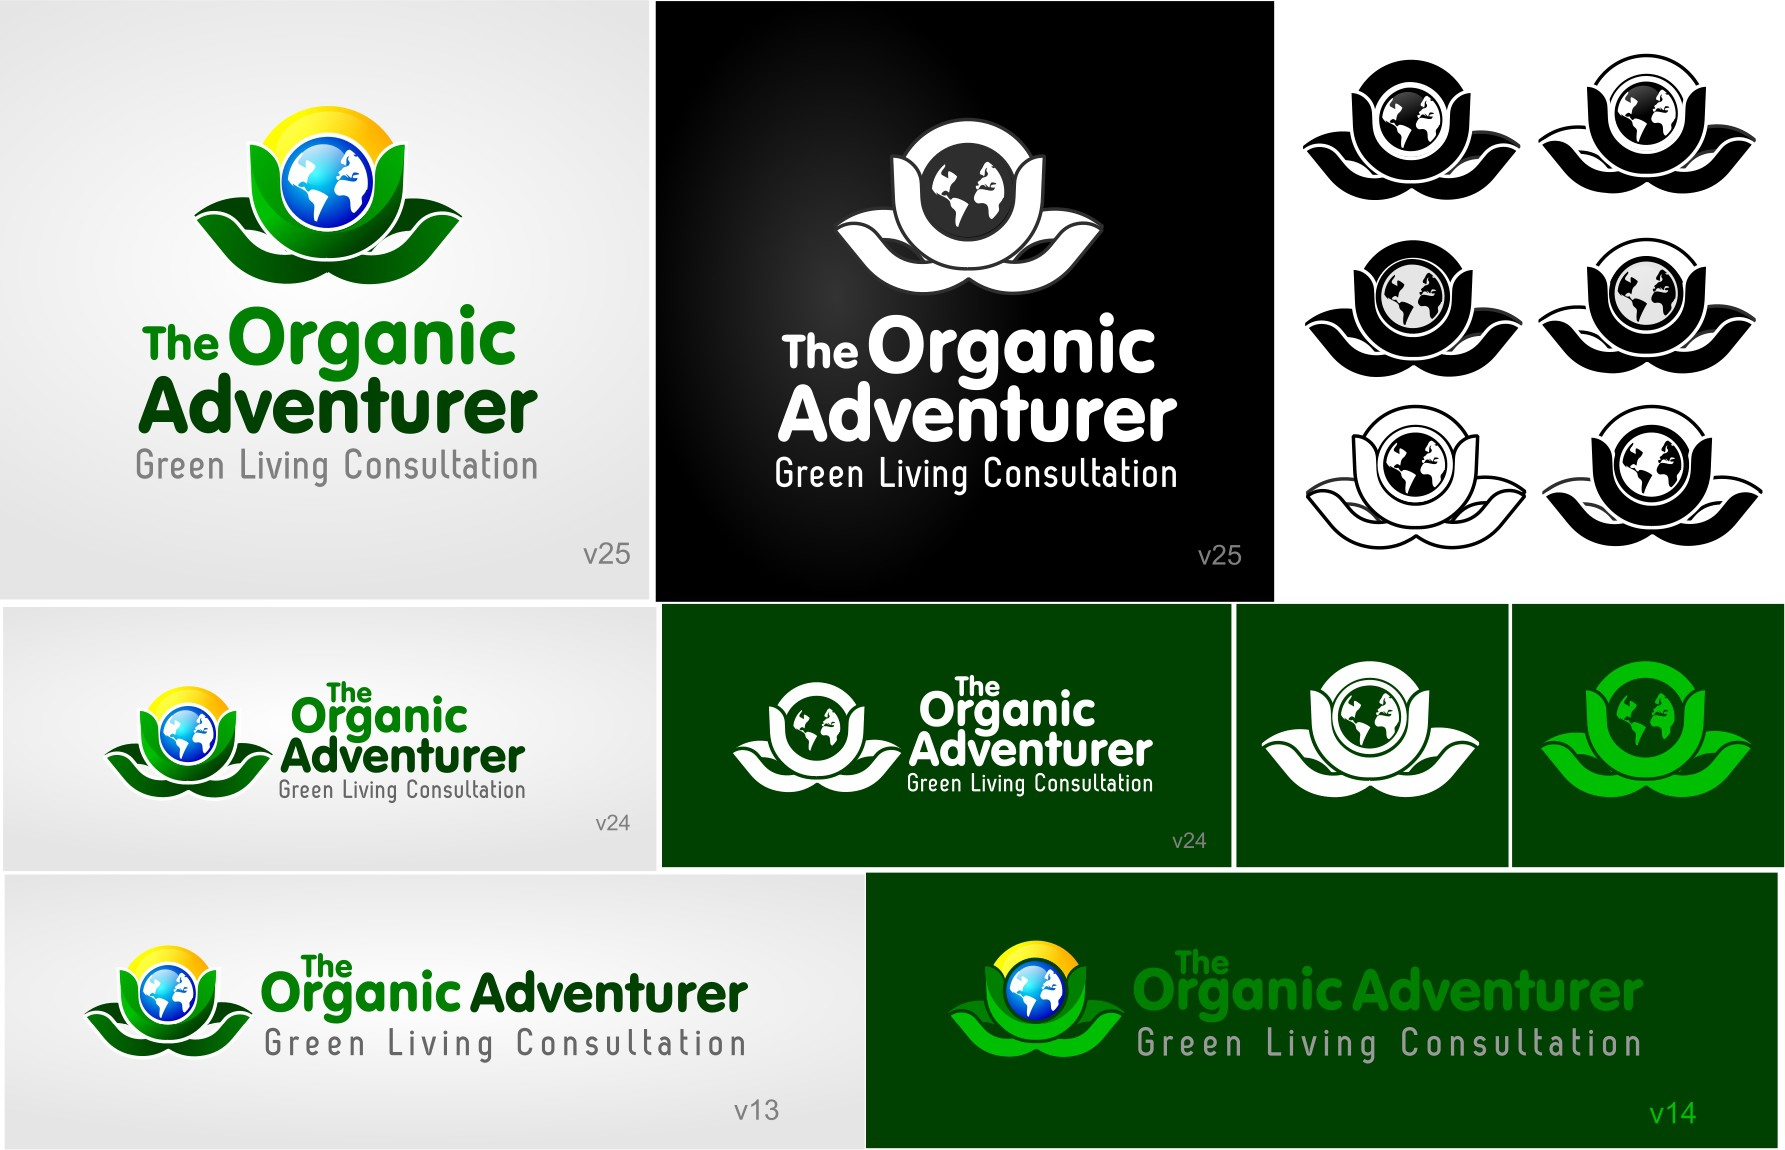 New logo wanted for The Organic Adventurer: Green Living Consultation